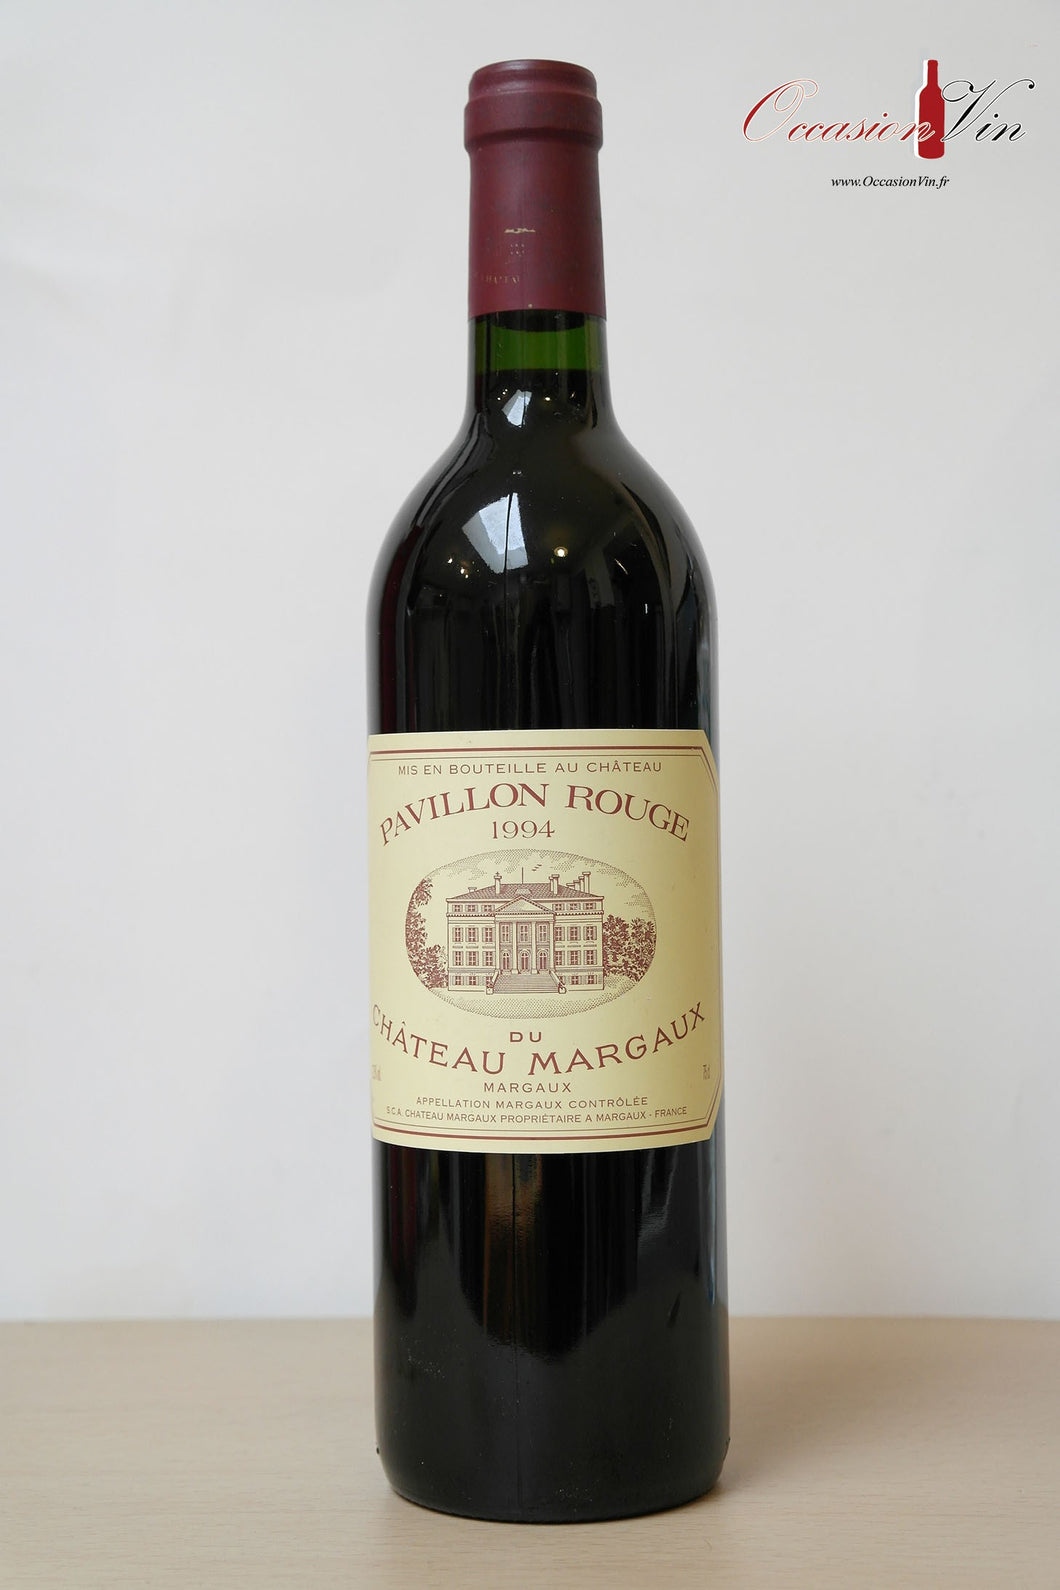 Pavillon Rouge Vin 1994